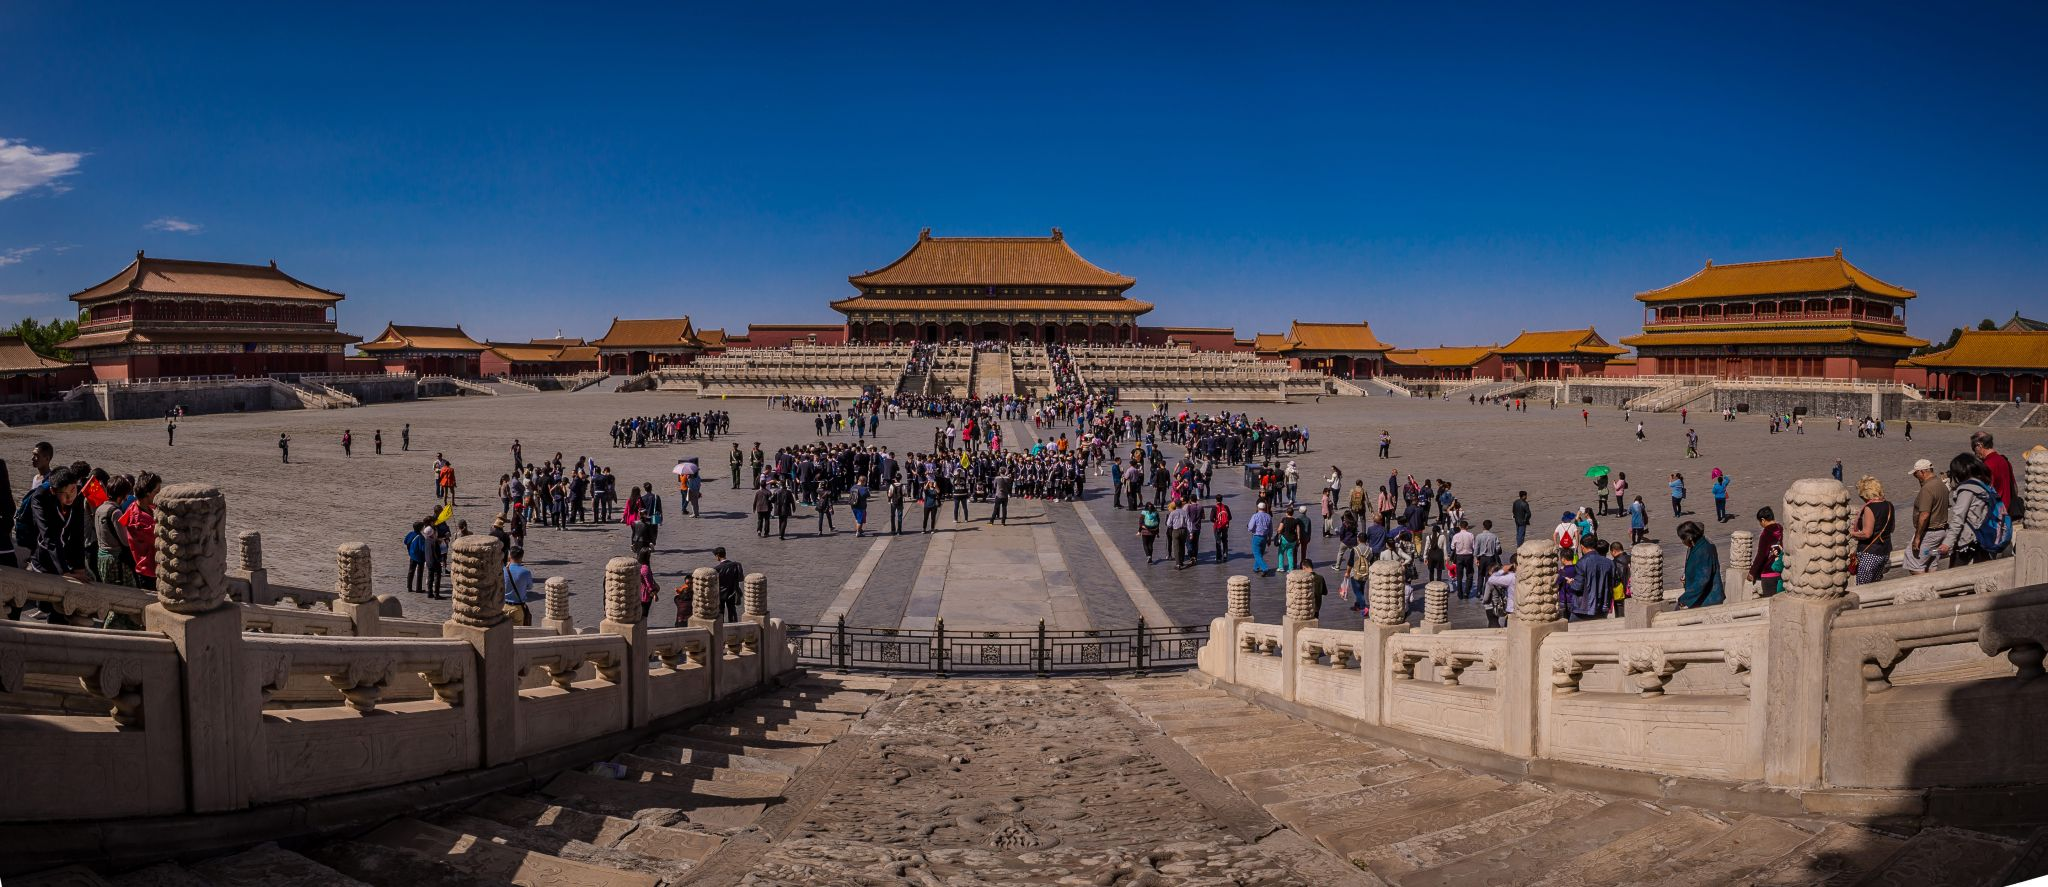 Hall of Supreme Harmony - Forbidden City, China